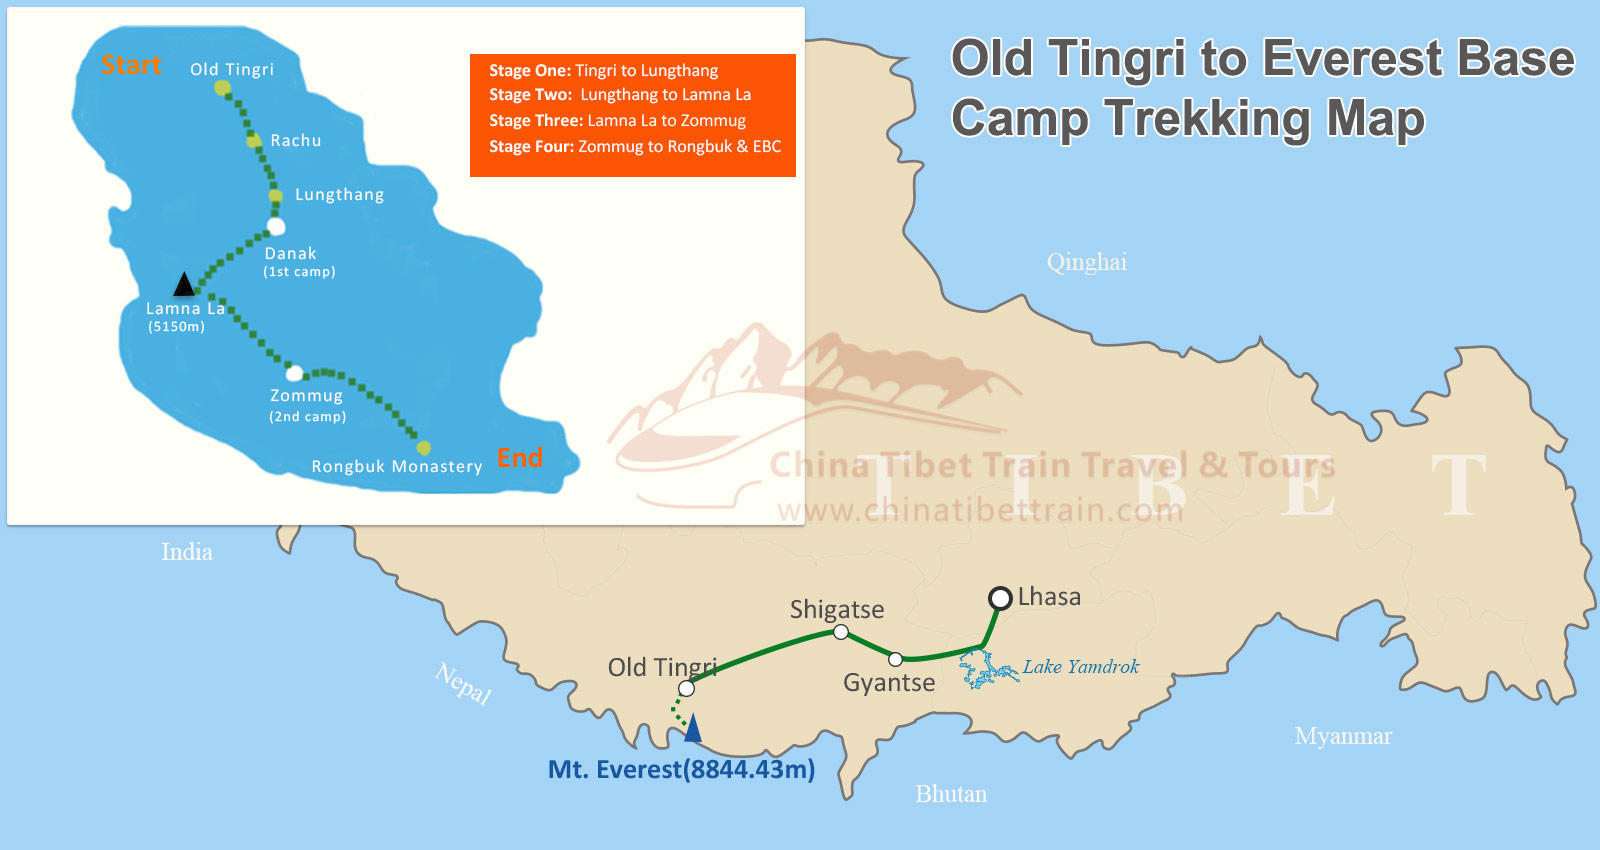 Trekking Map from Old Tingri to Everest Base Camp